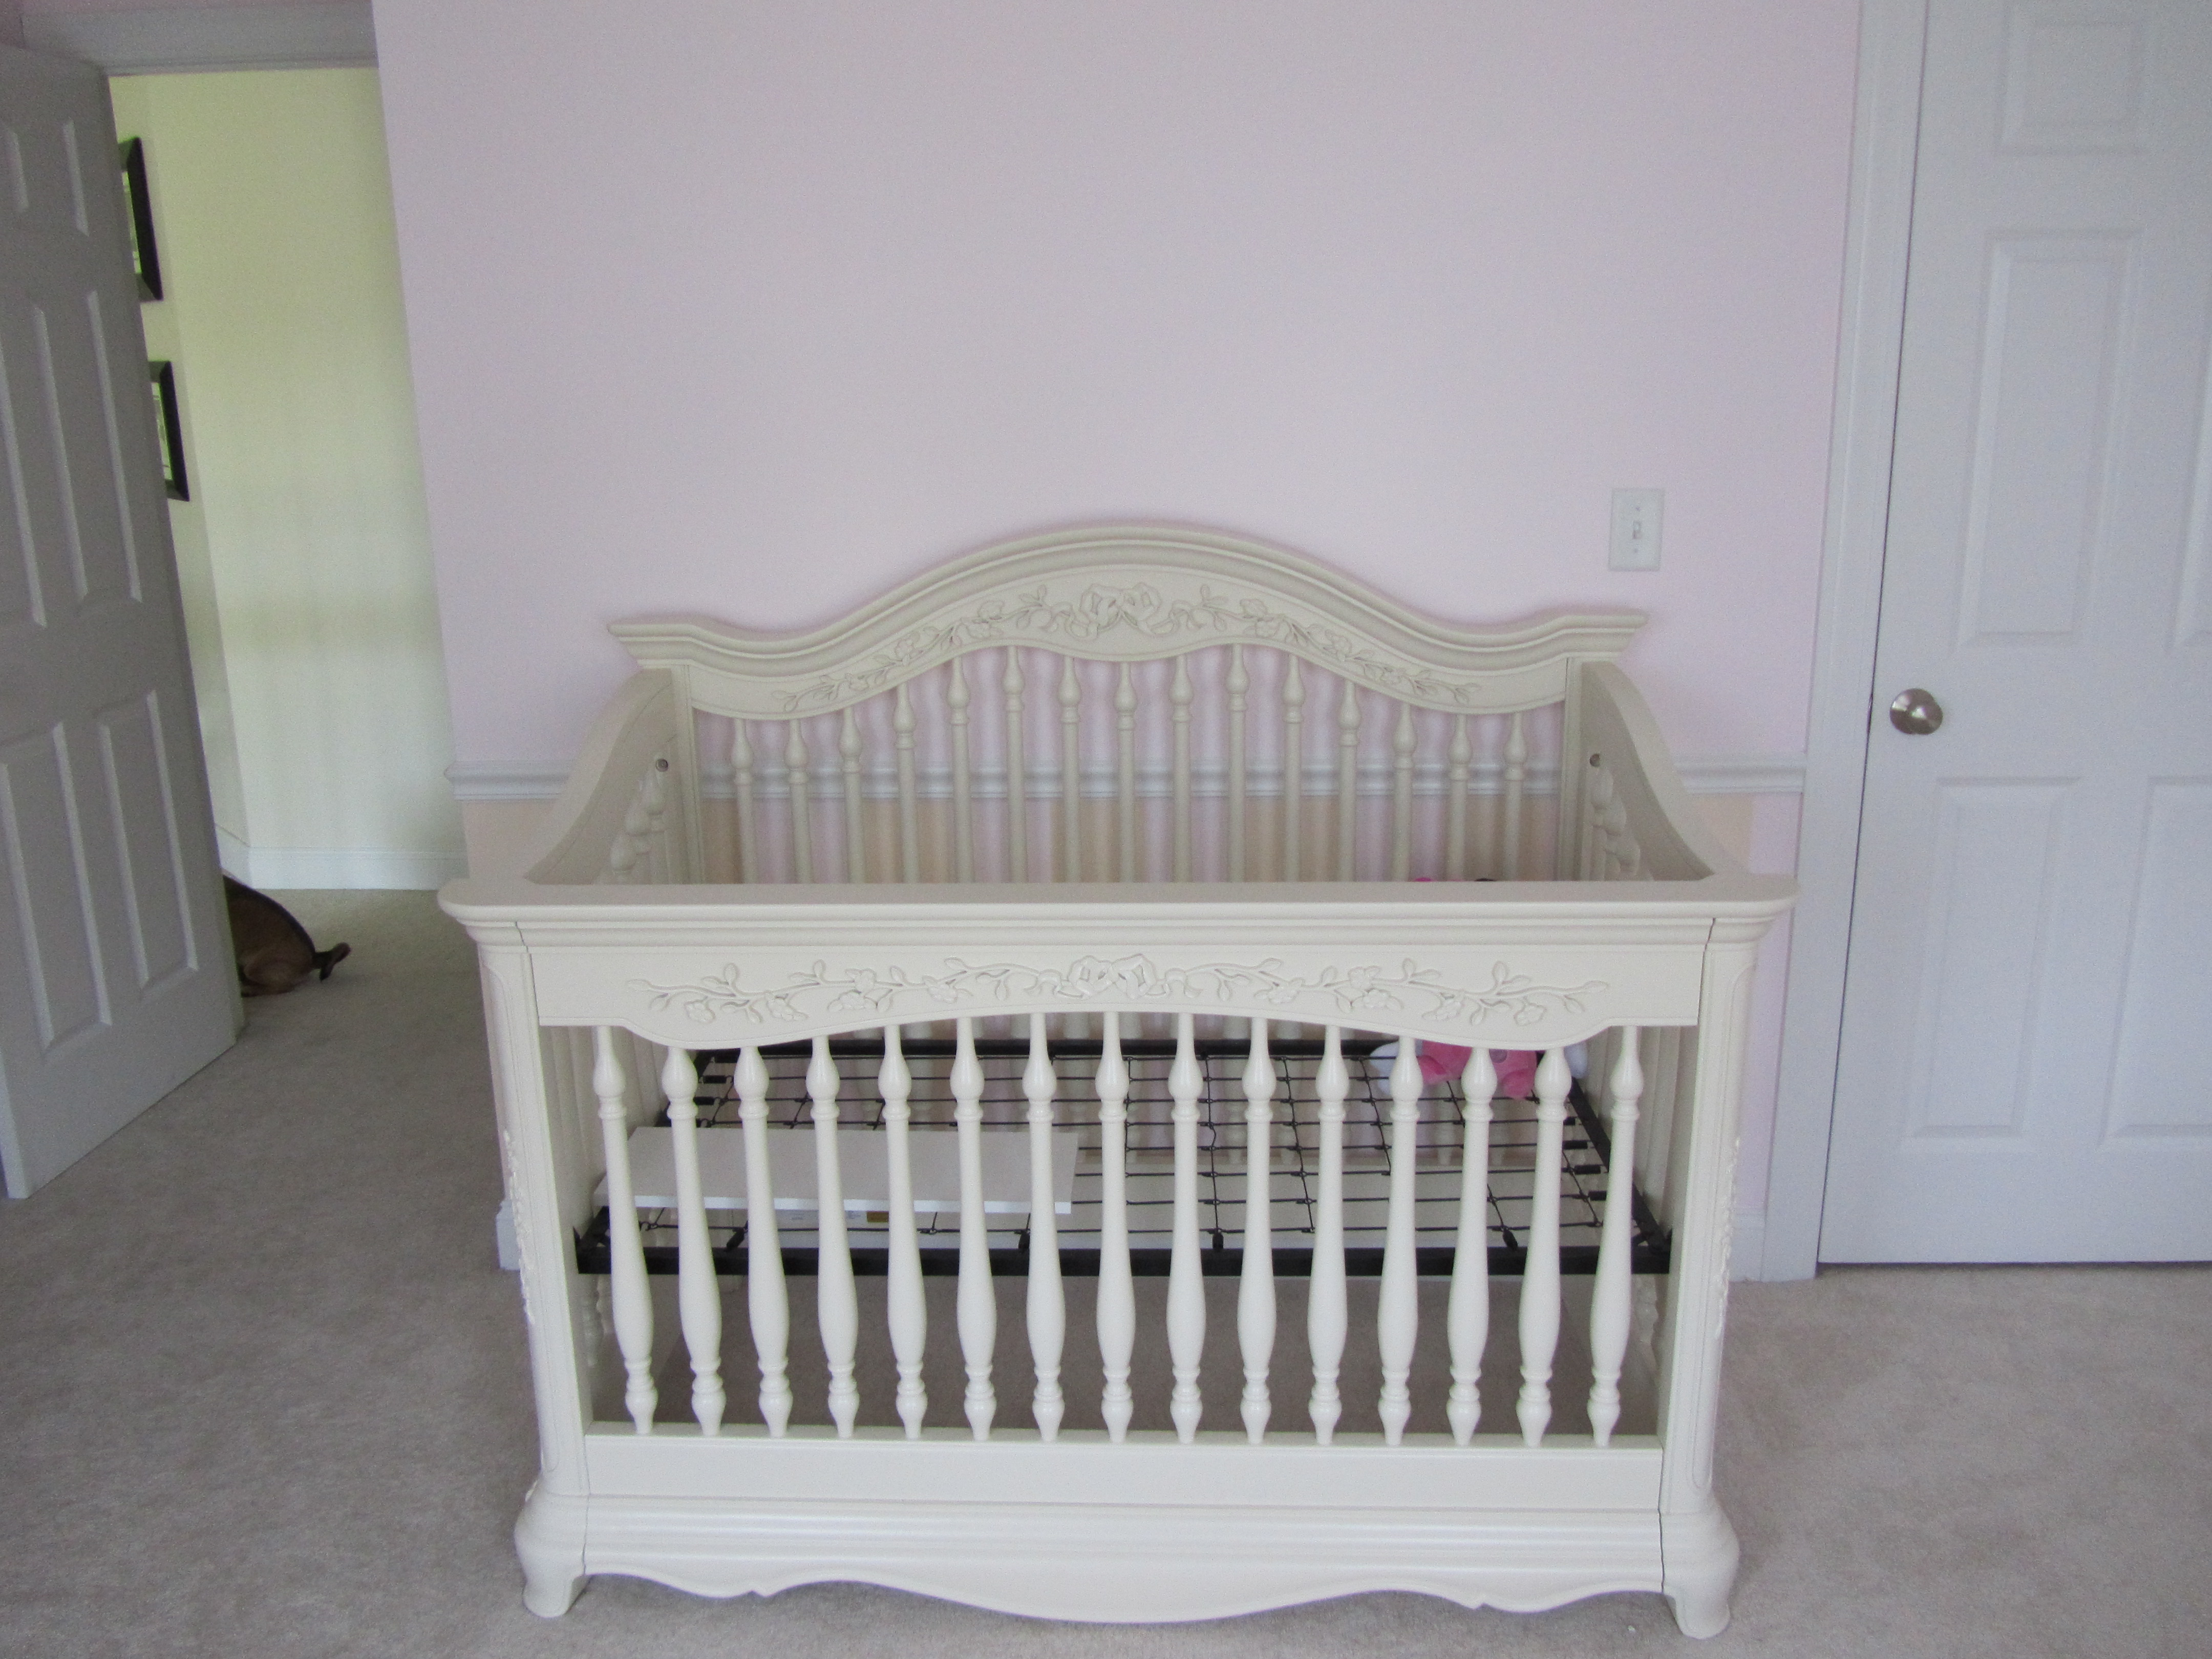 The Furniture Is From Buy Buy Baby ...